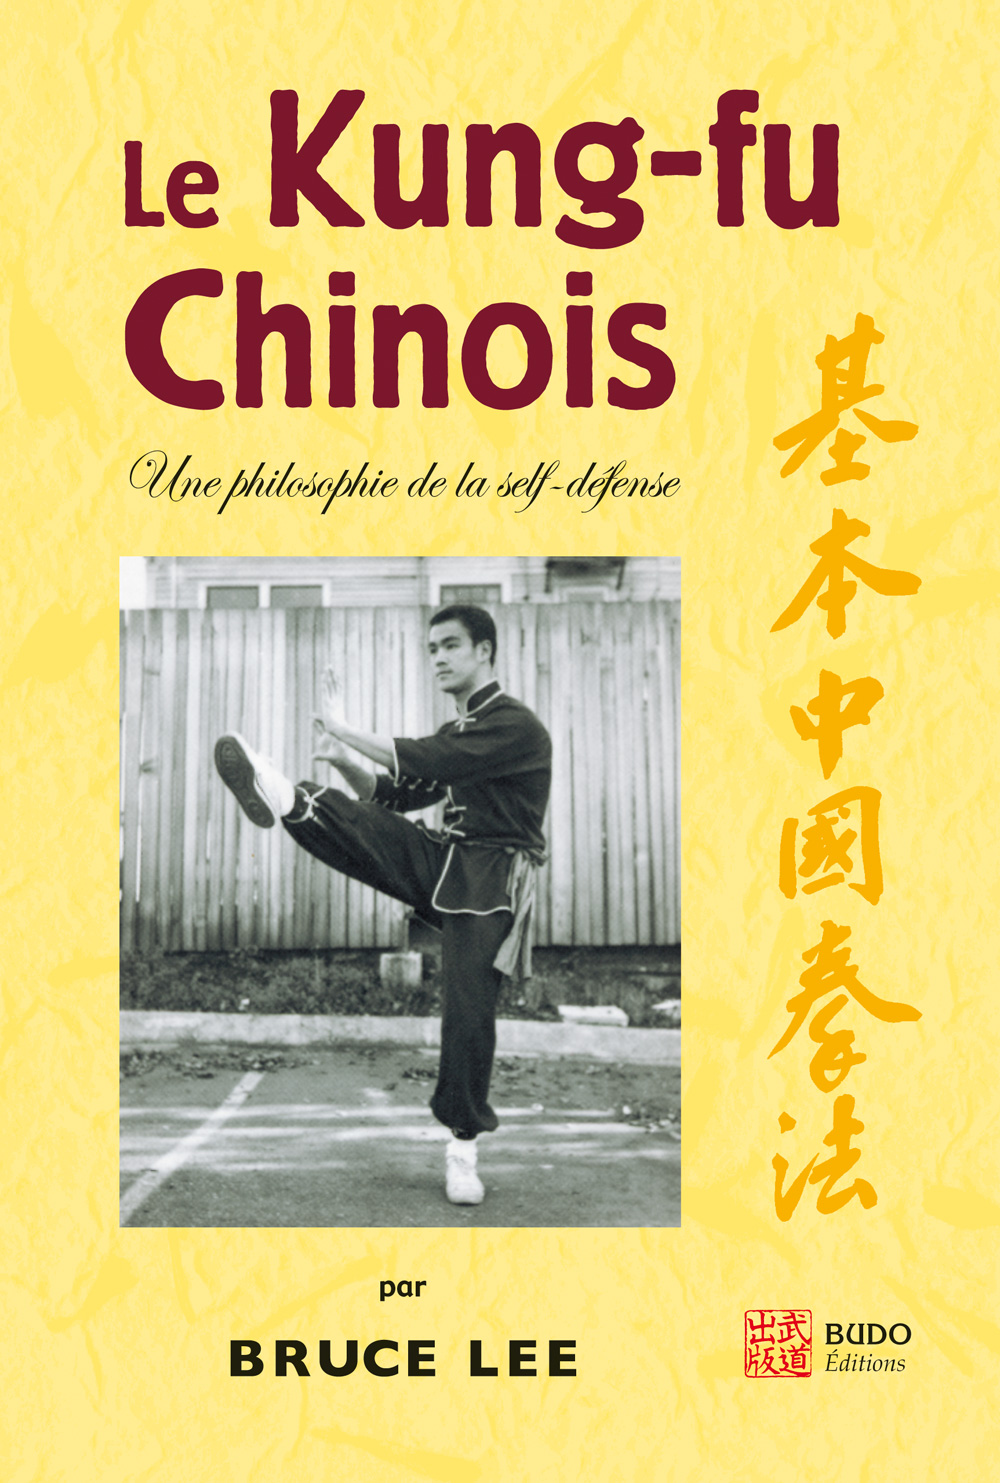 LE KUNG-FU CHINOIS